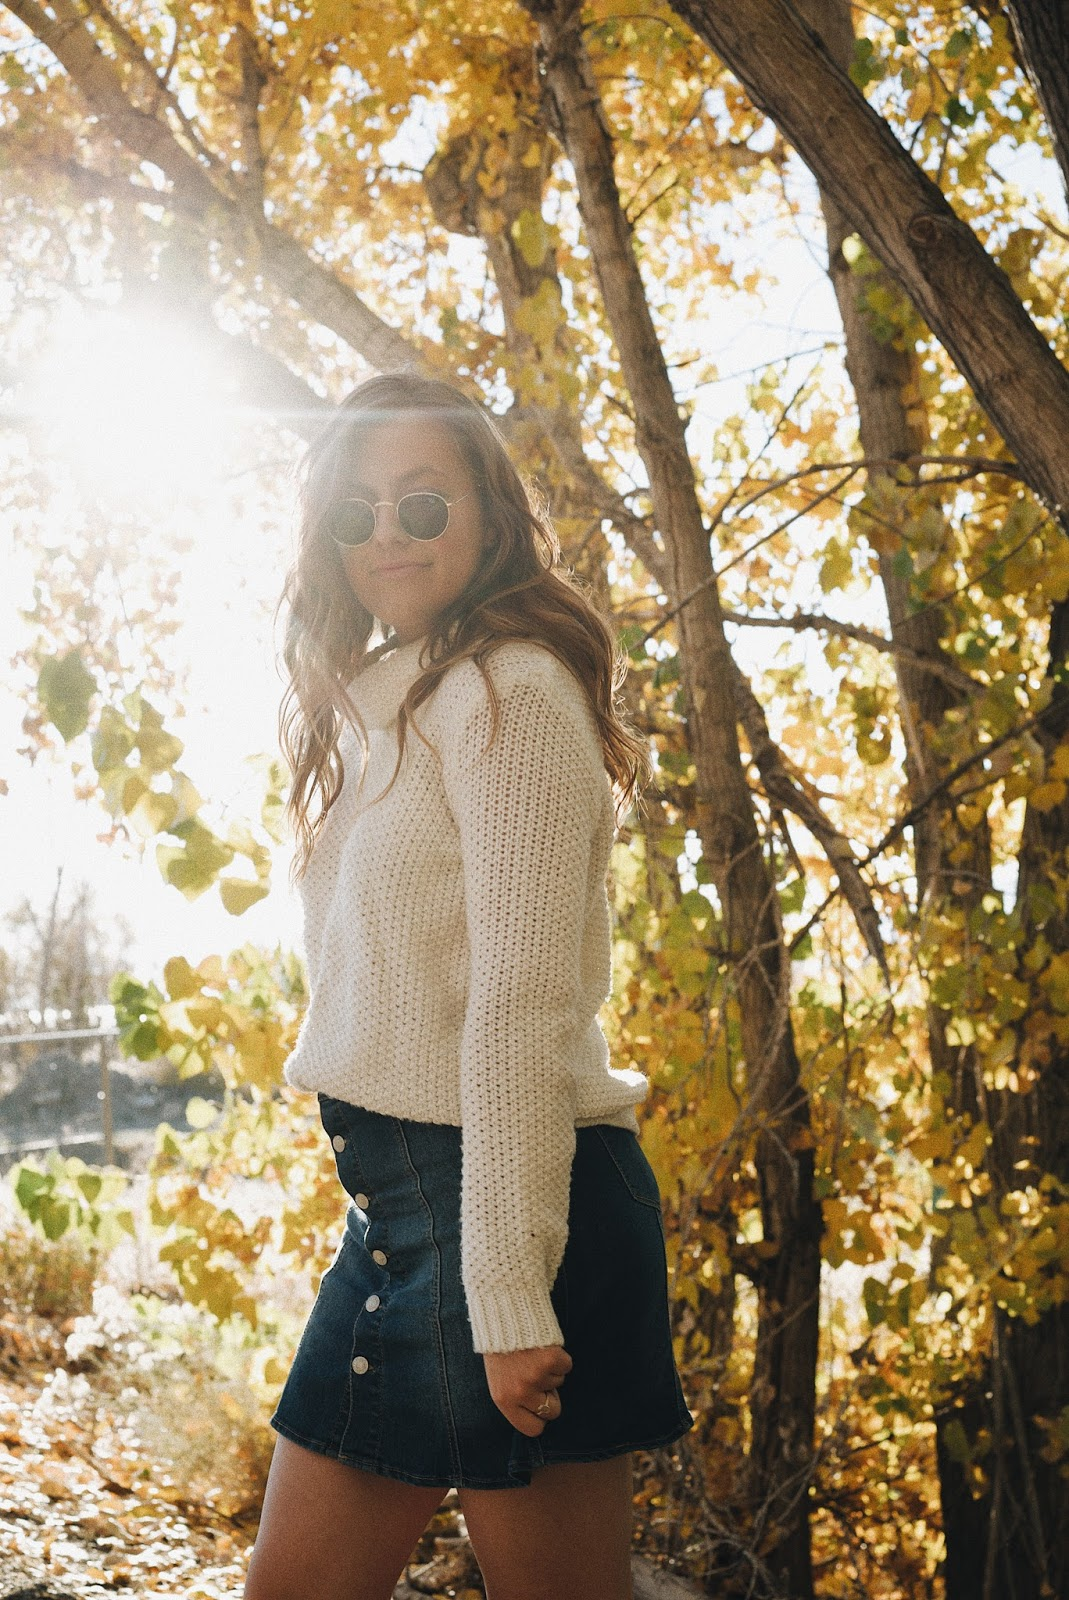 rayban round sunglasses long hair fall outfit